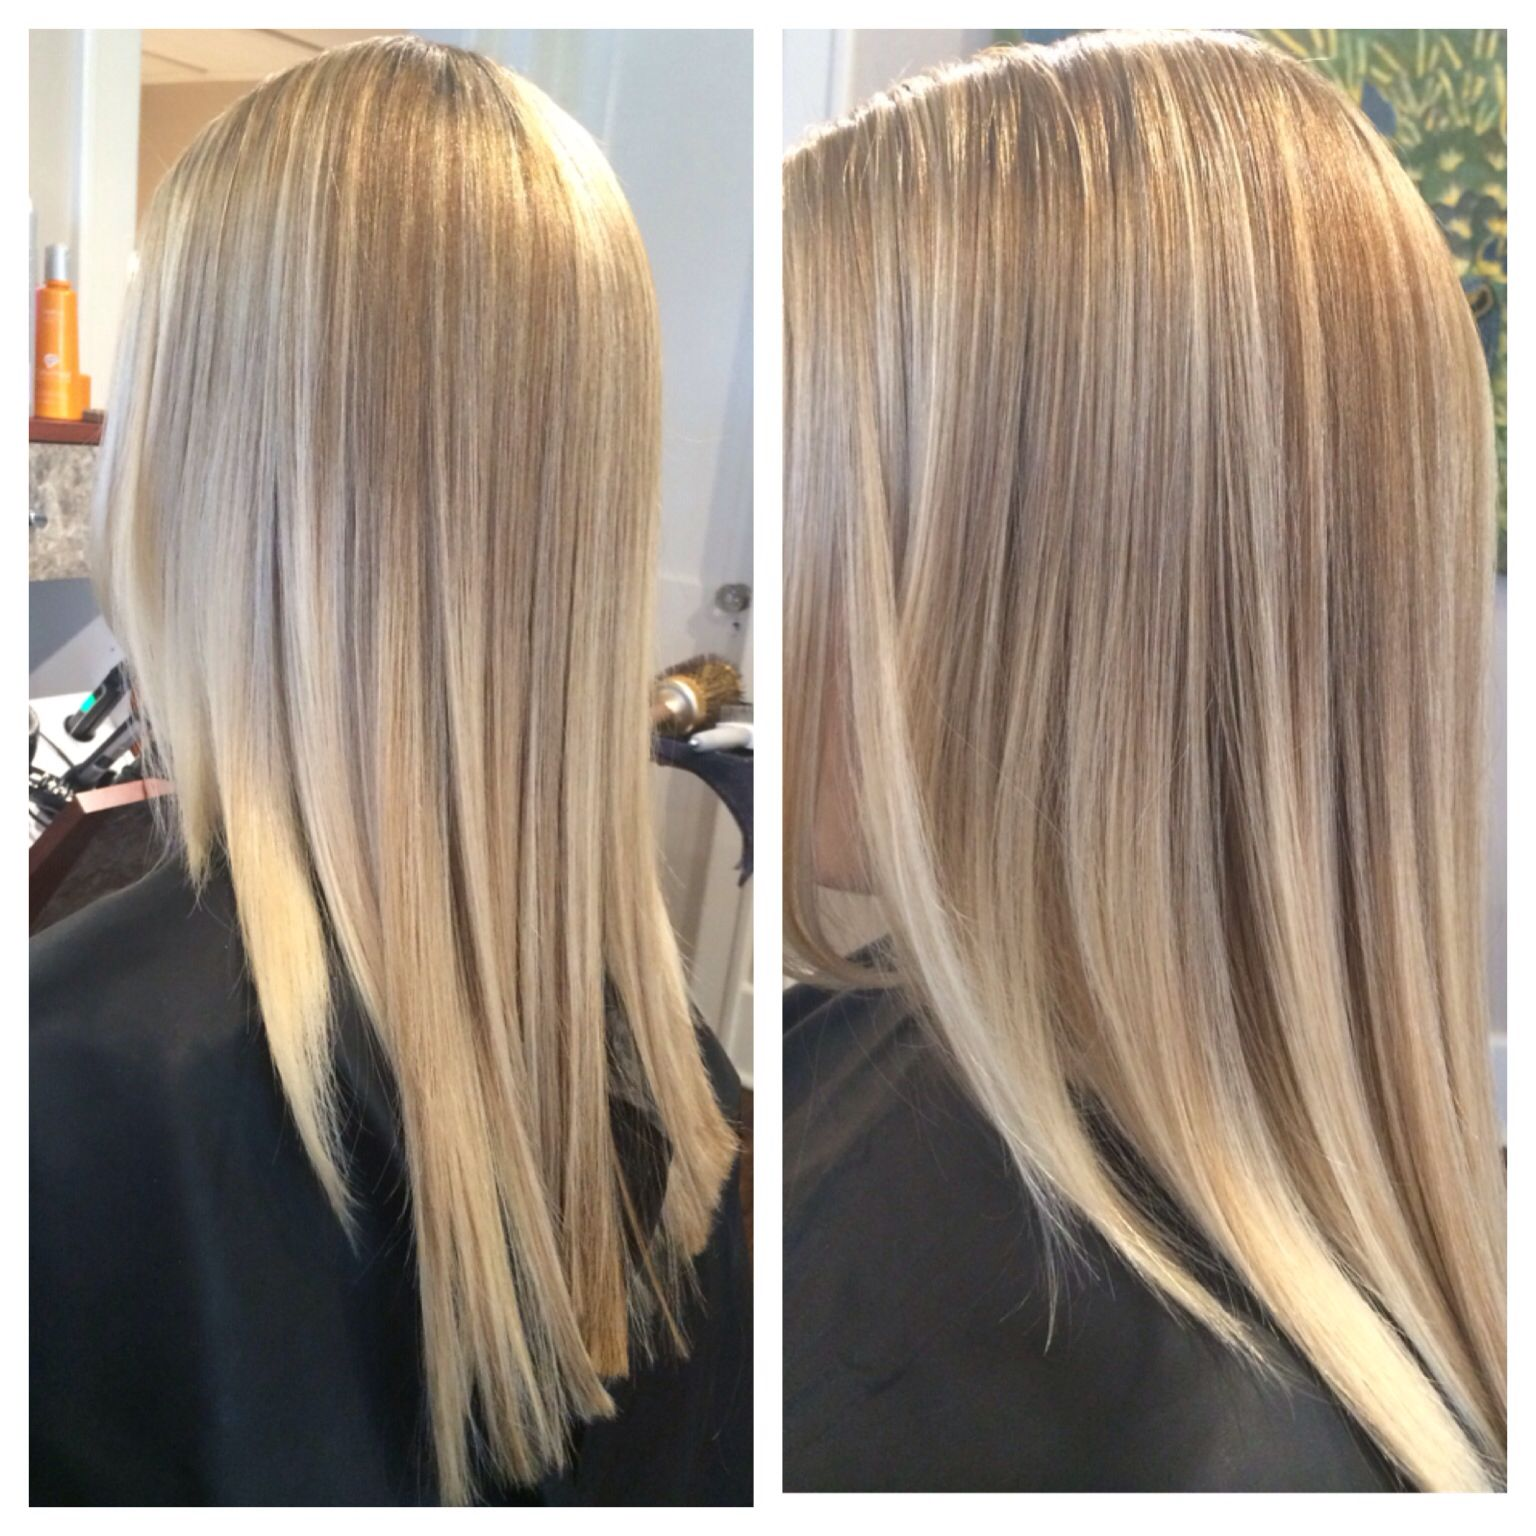 Balayage Hair Trends Lighter And Brighter On The Ends